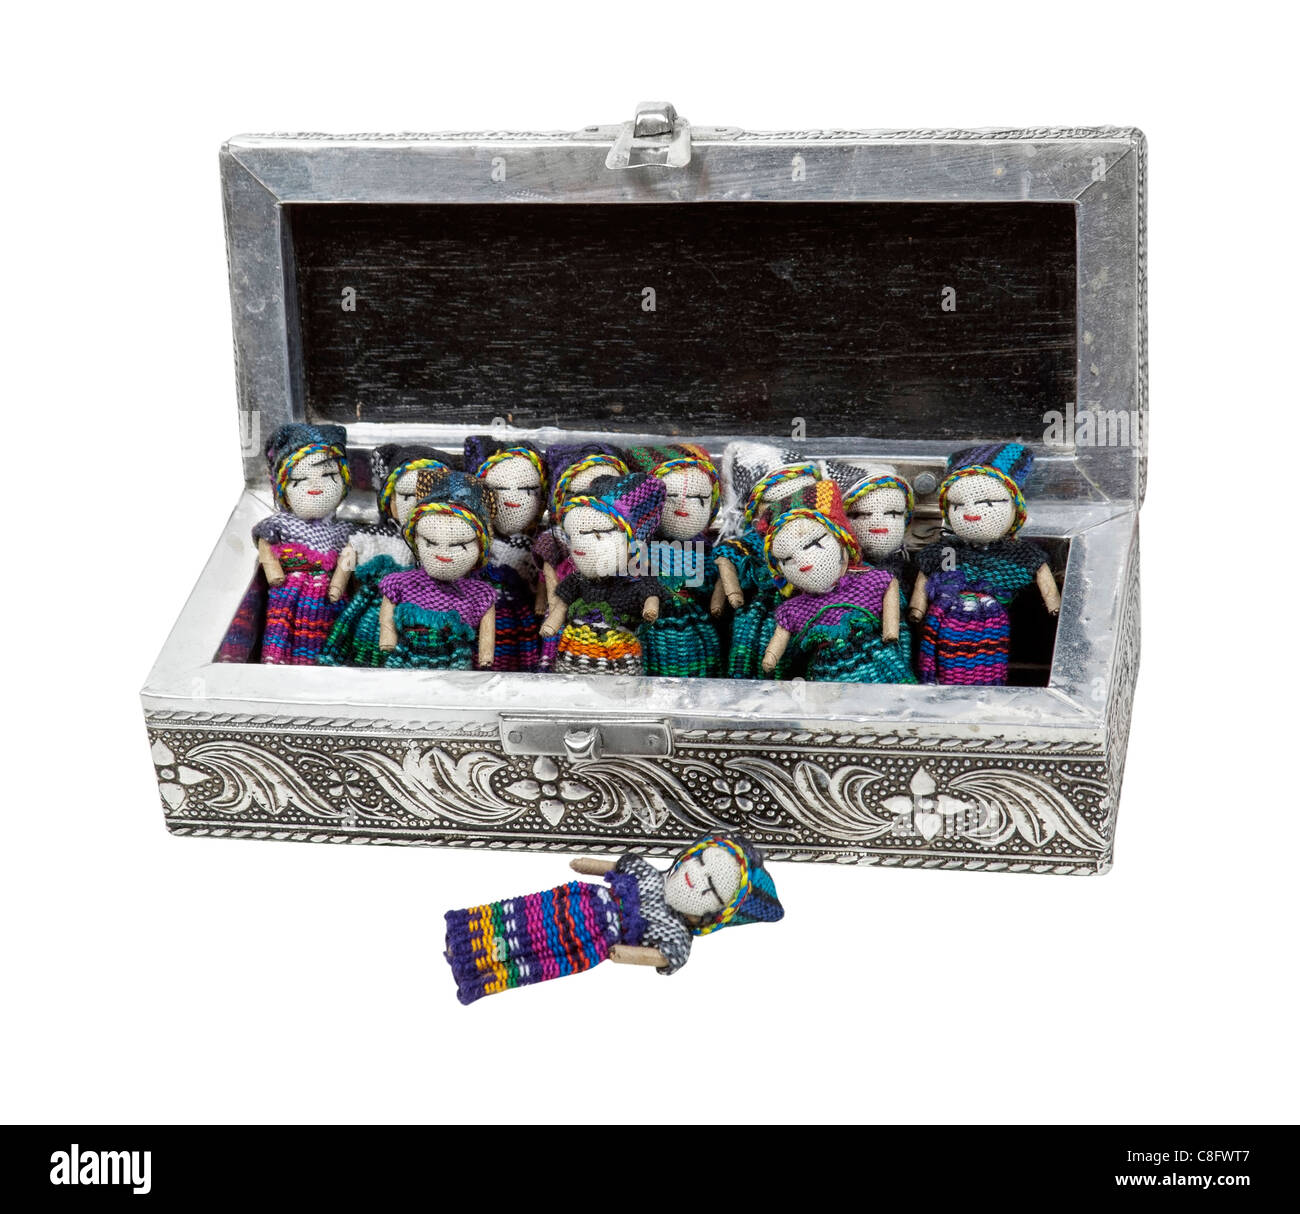 Silver box of worry dolls - Stock Image